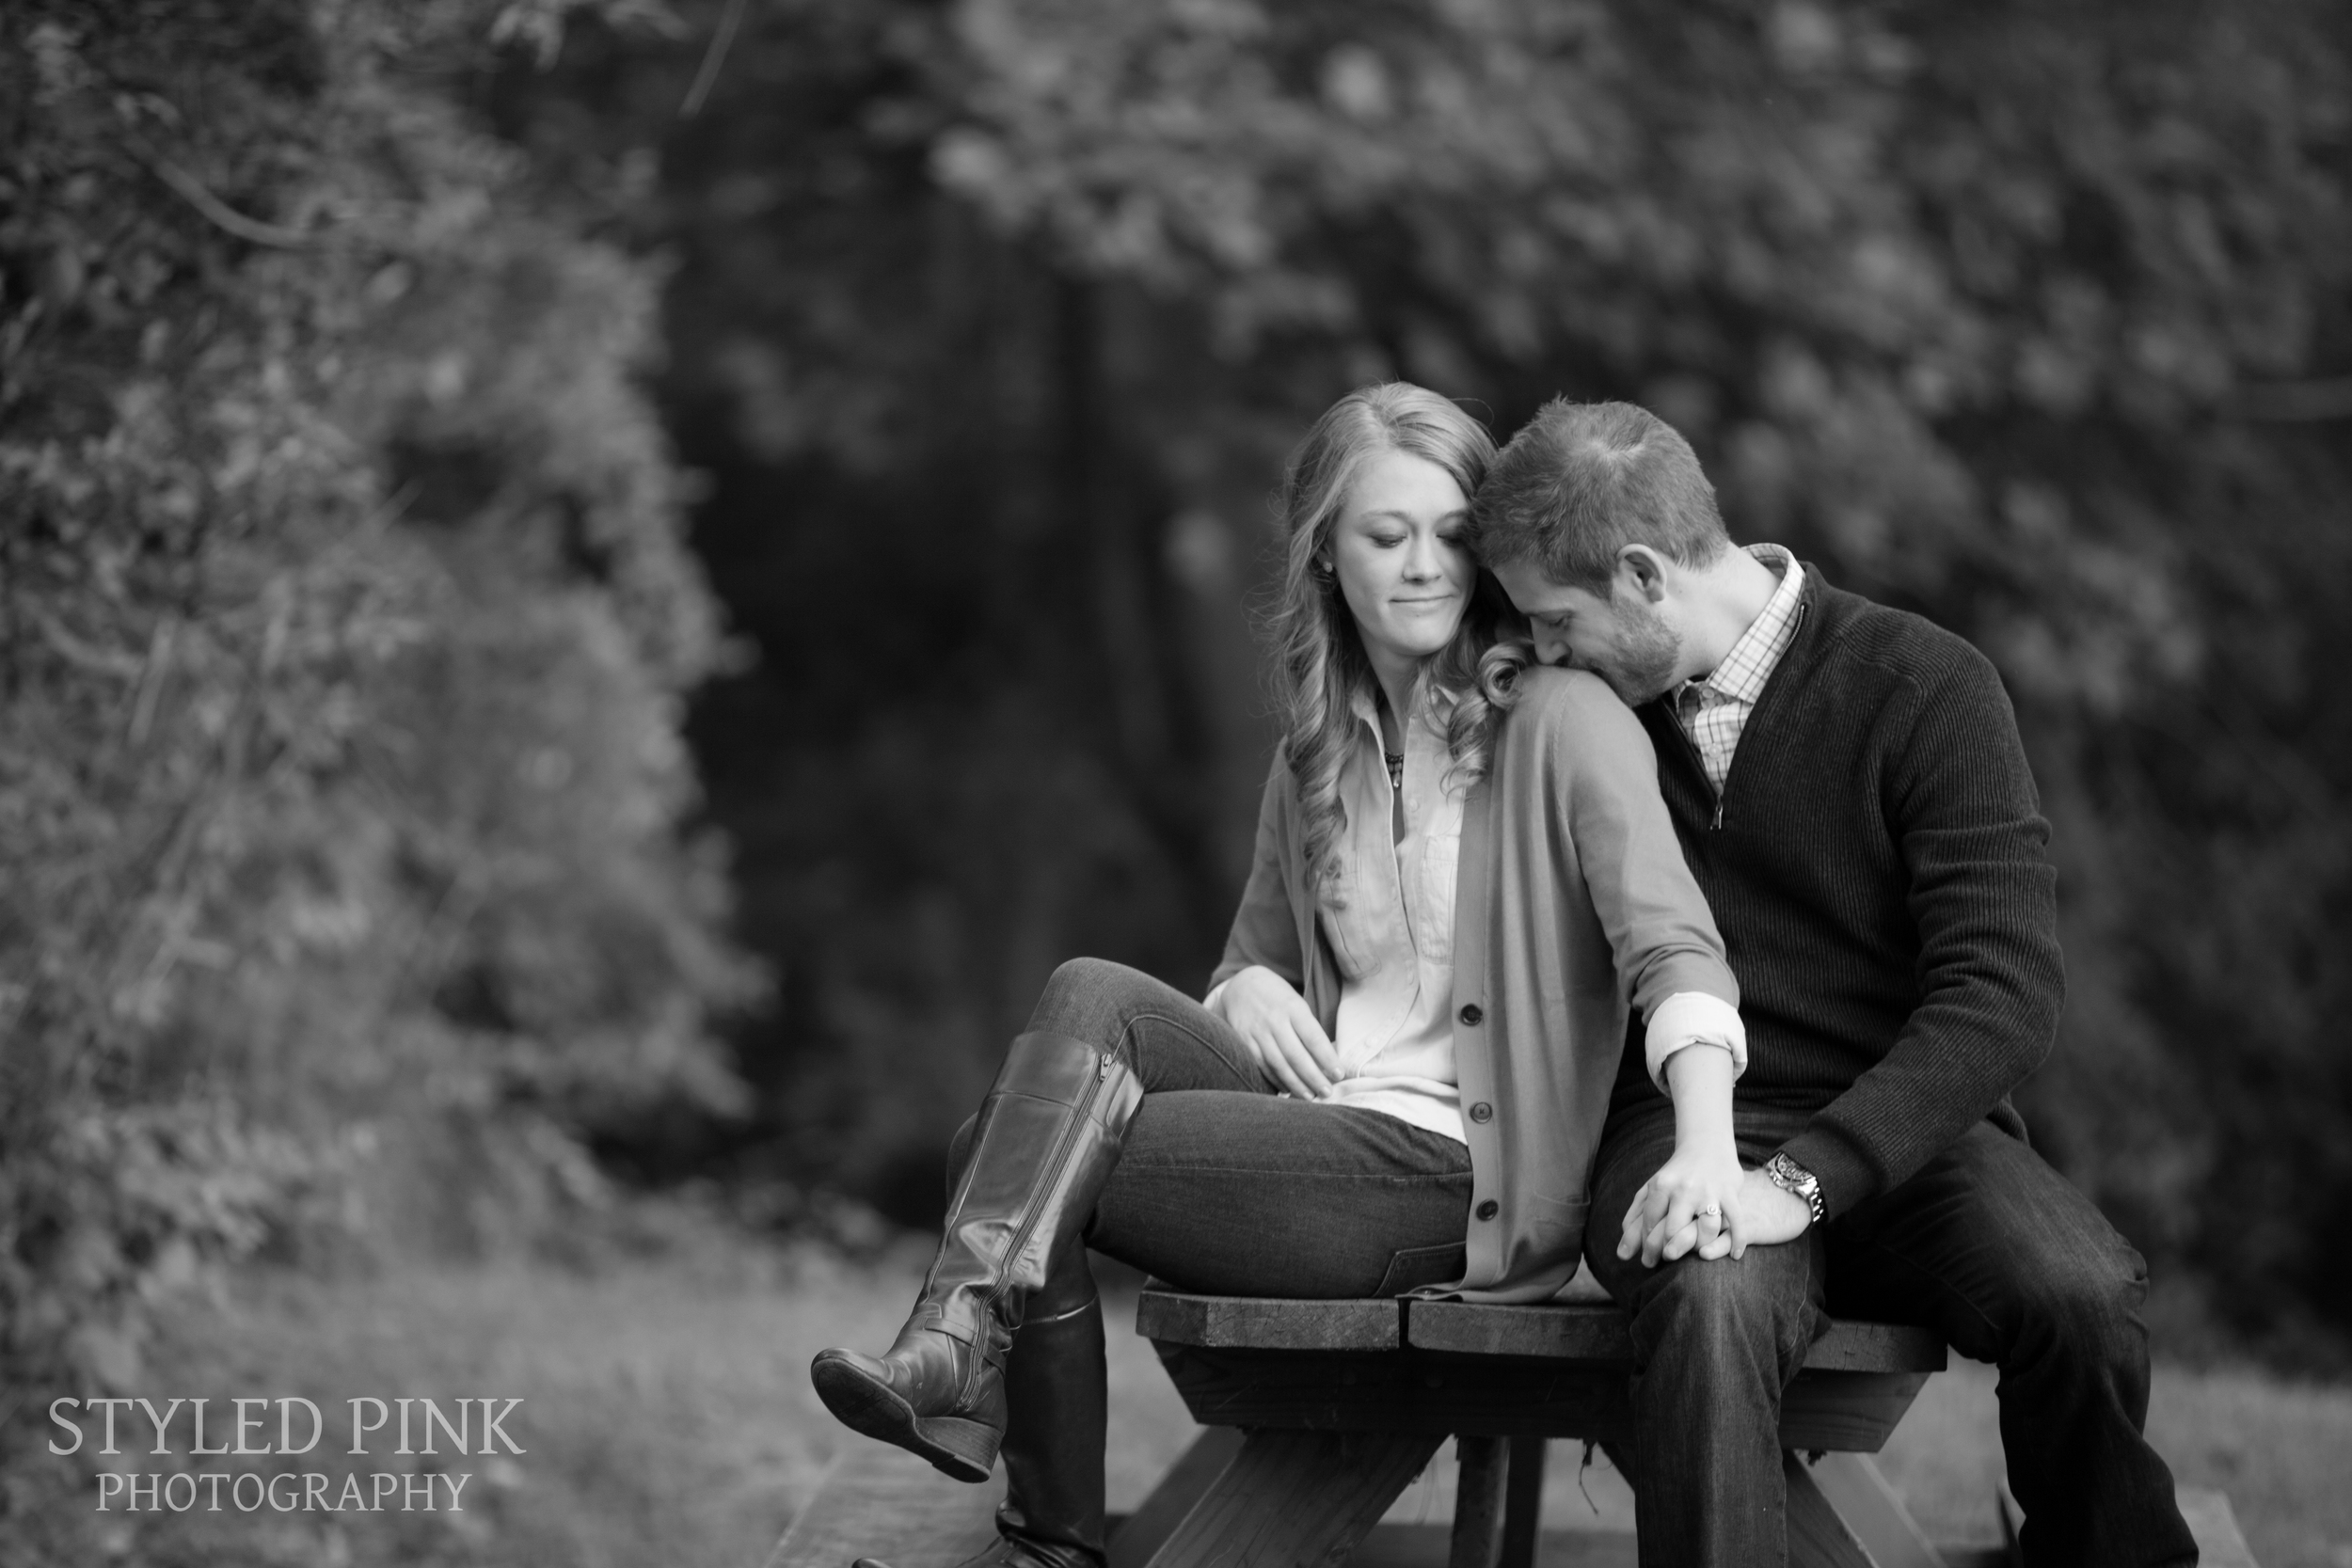 styled-pink-brandywine-state-park-engagement-8